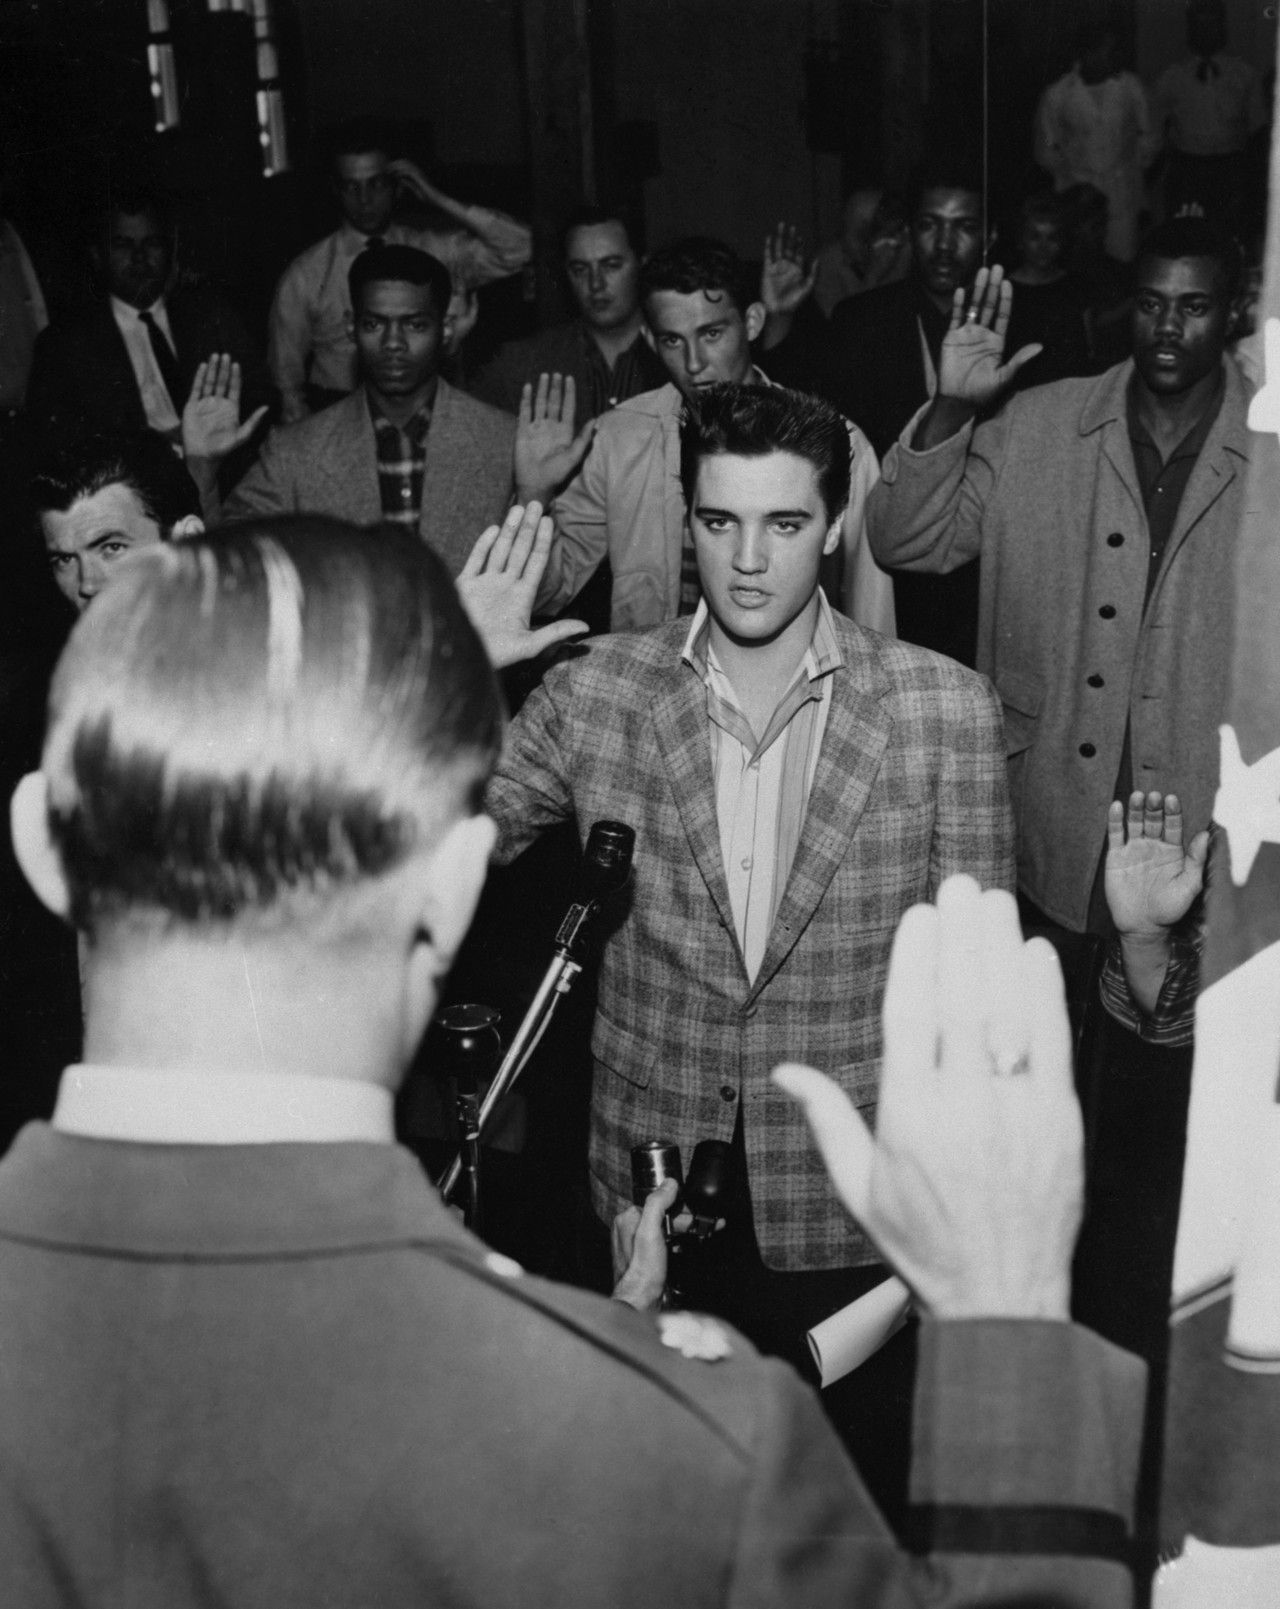 Elvis Presley (center) at his induction into the US Army